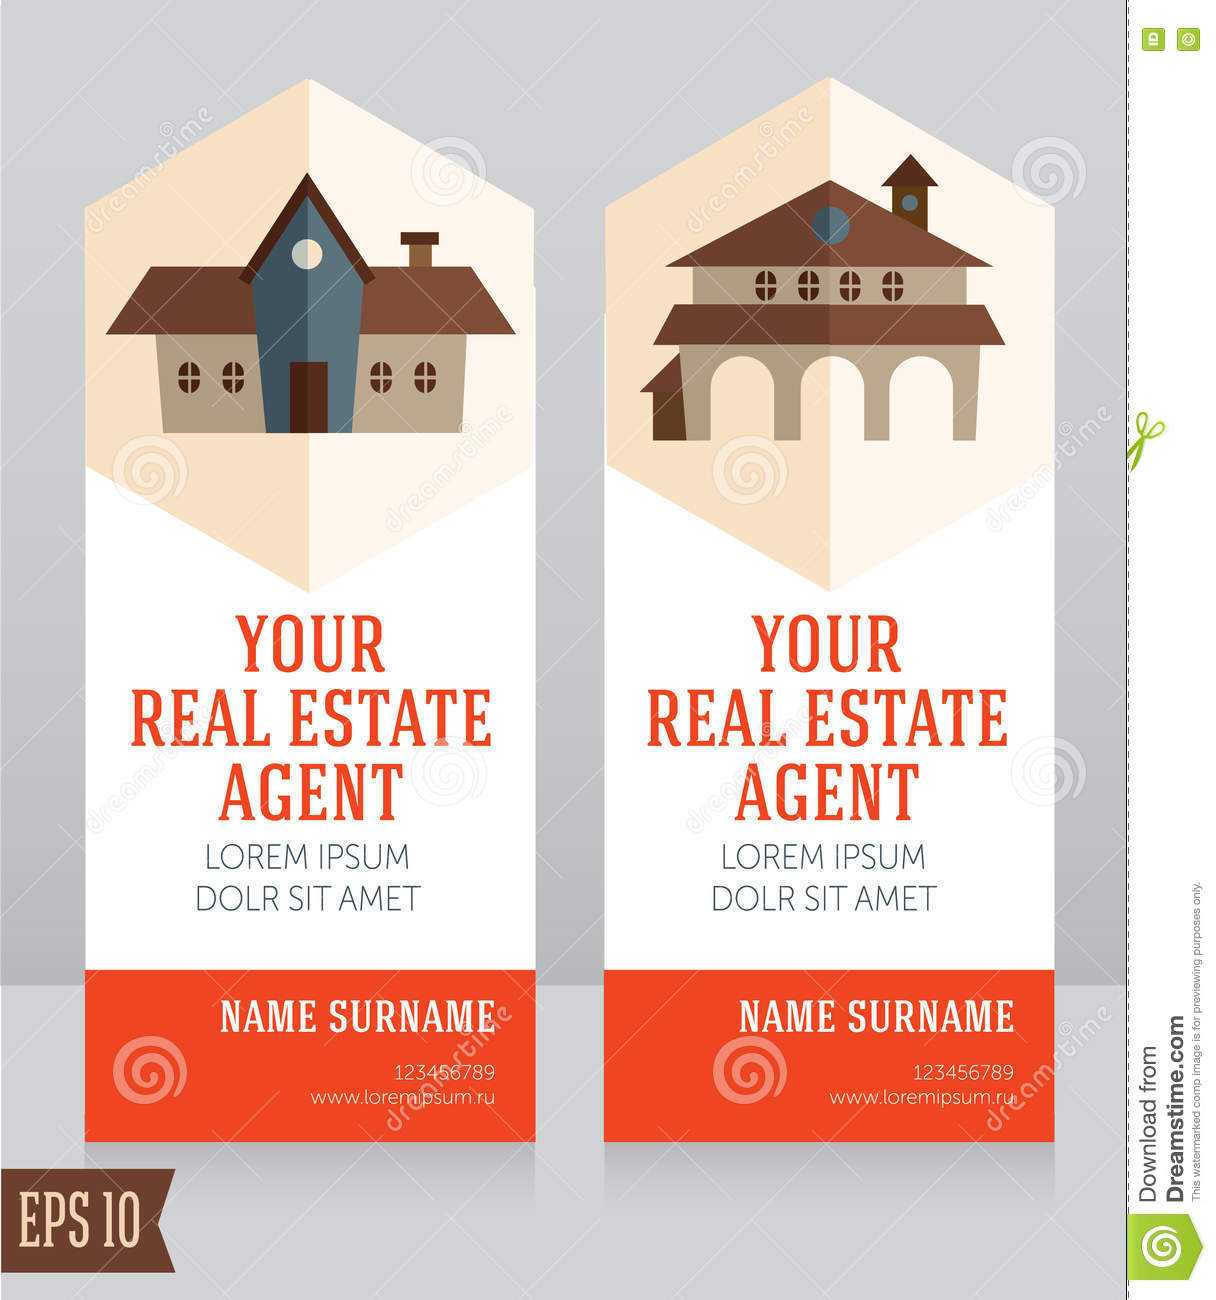 Design Template For Real Estate Agent Business Card Stock Pertaining To Real Estate Agent Business Card Template